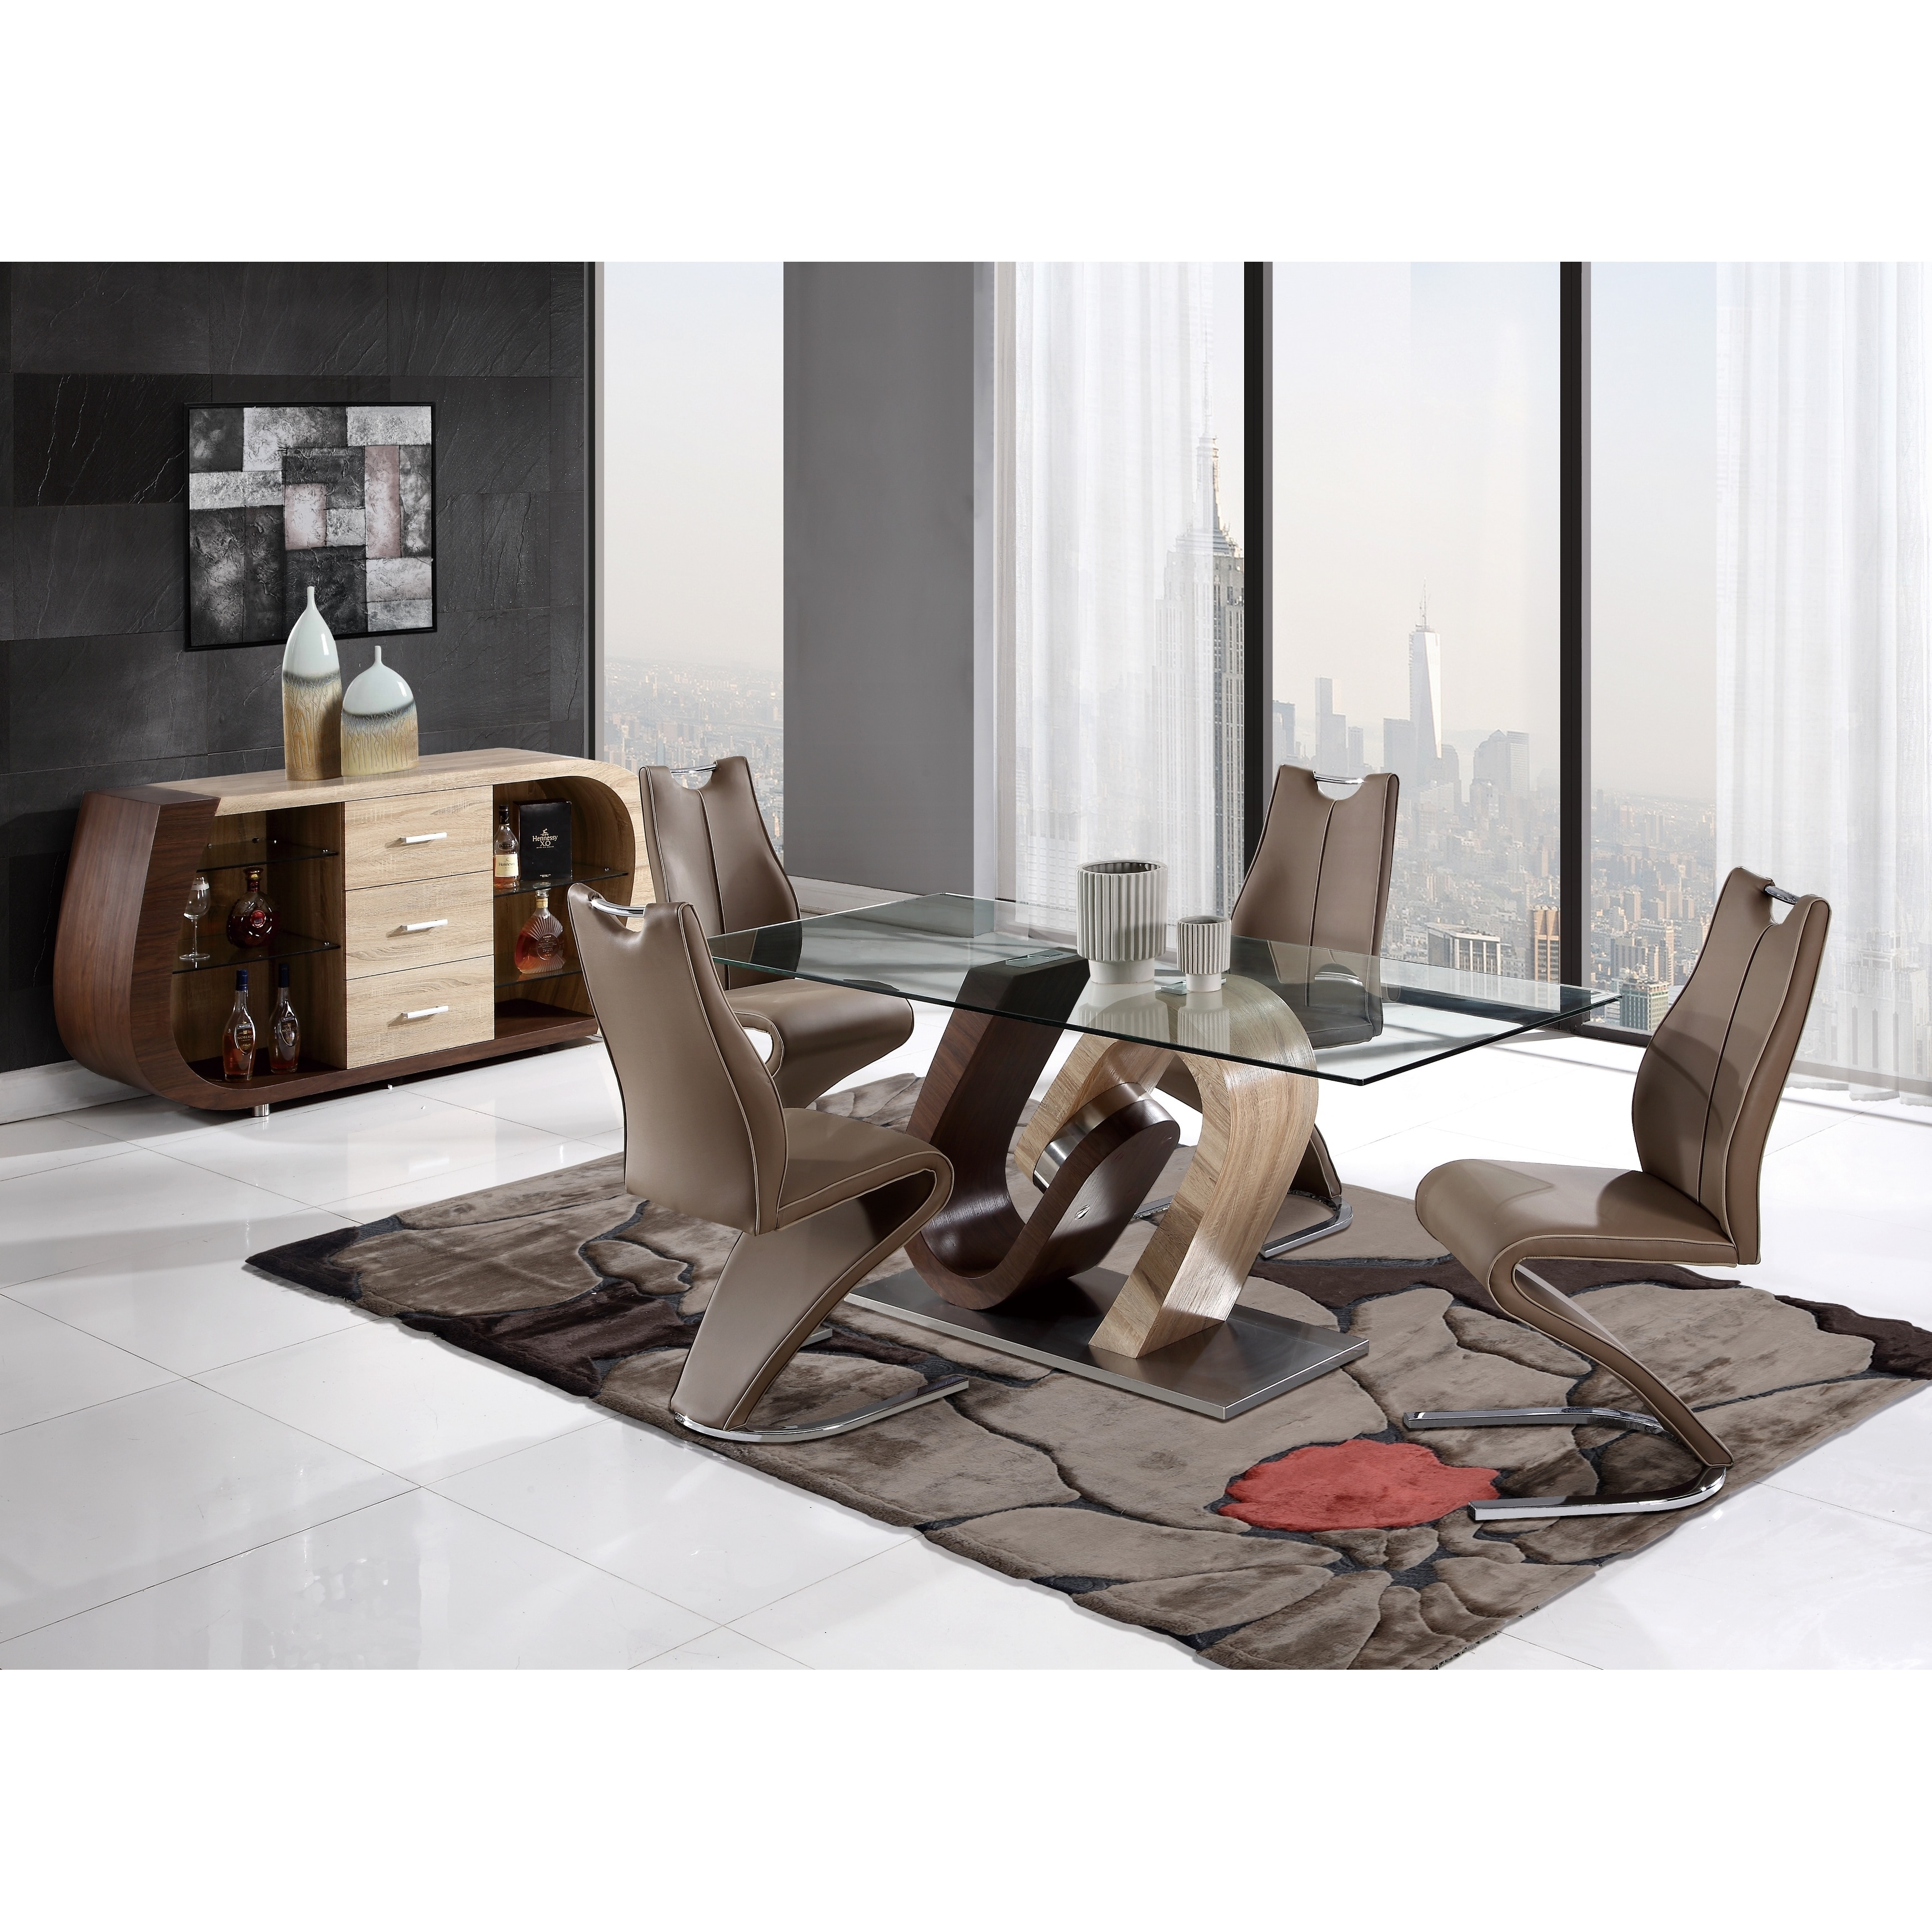 table farm tree to rustic dining chairs silo regard room and with modern christmas